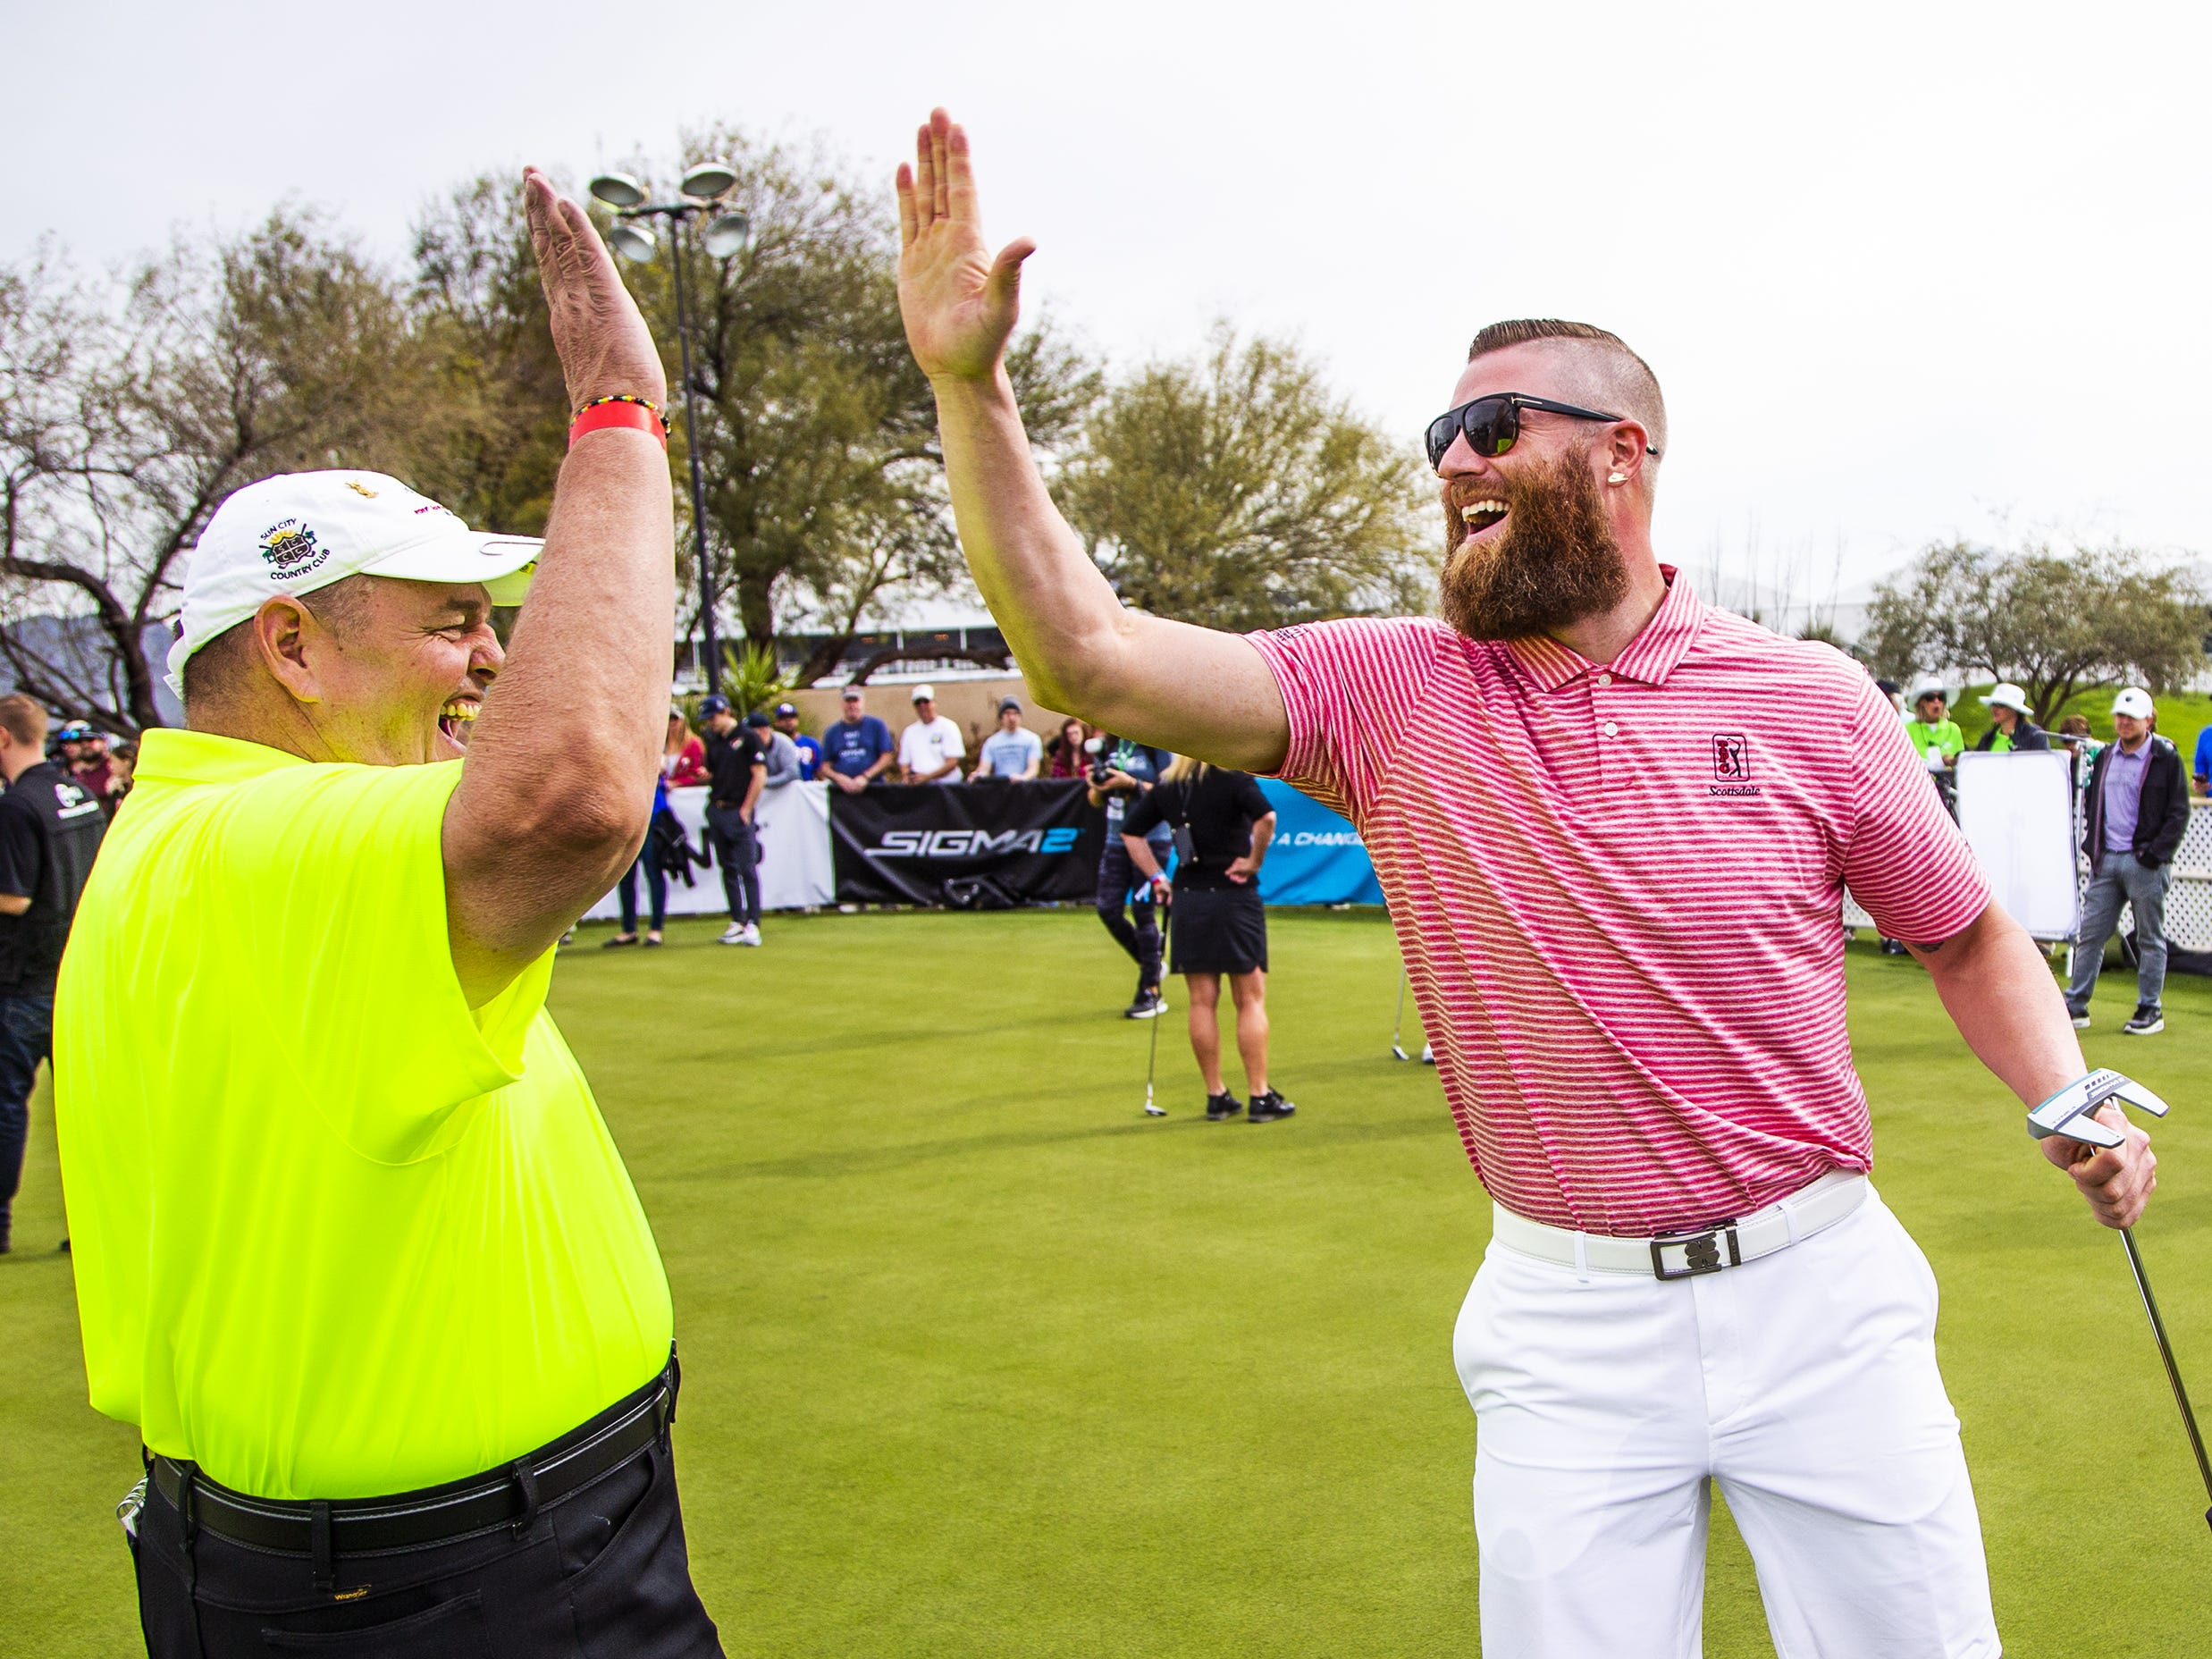 Hans Lentz, left, and his partner, Arizona Diamondbacks pitcher Archie Bradley, high-five during the San Tan Ford Special Olympics Open at the Waste Management Phoenix Open at the TPC Scottsdale, Tuesday, January 29, 2019.